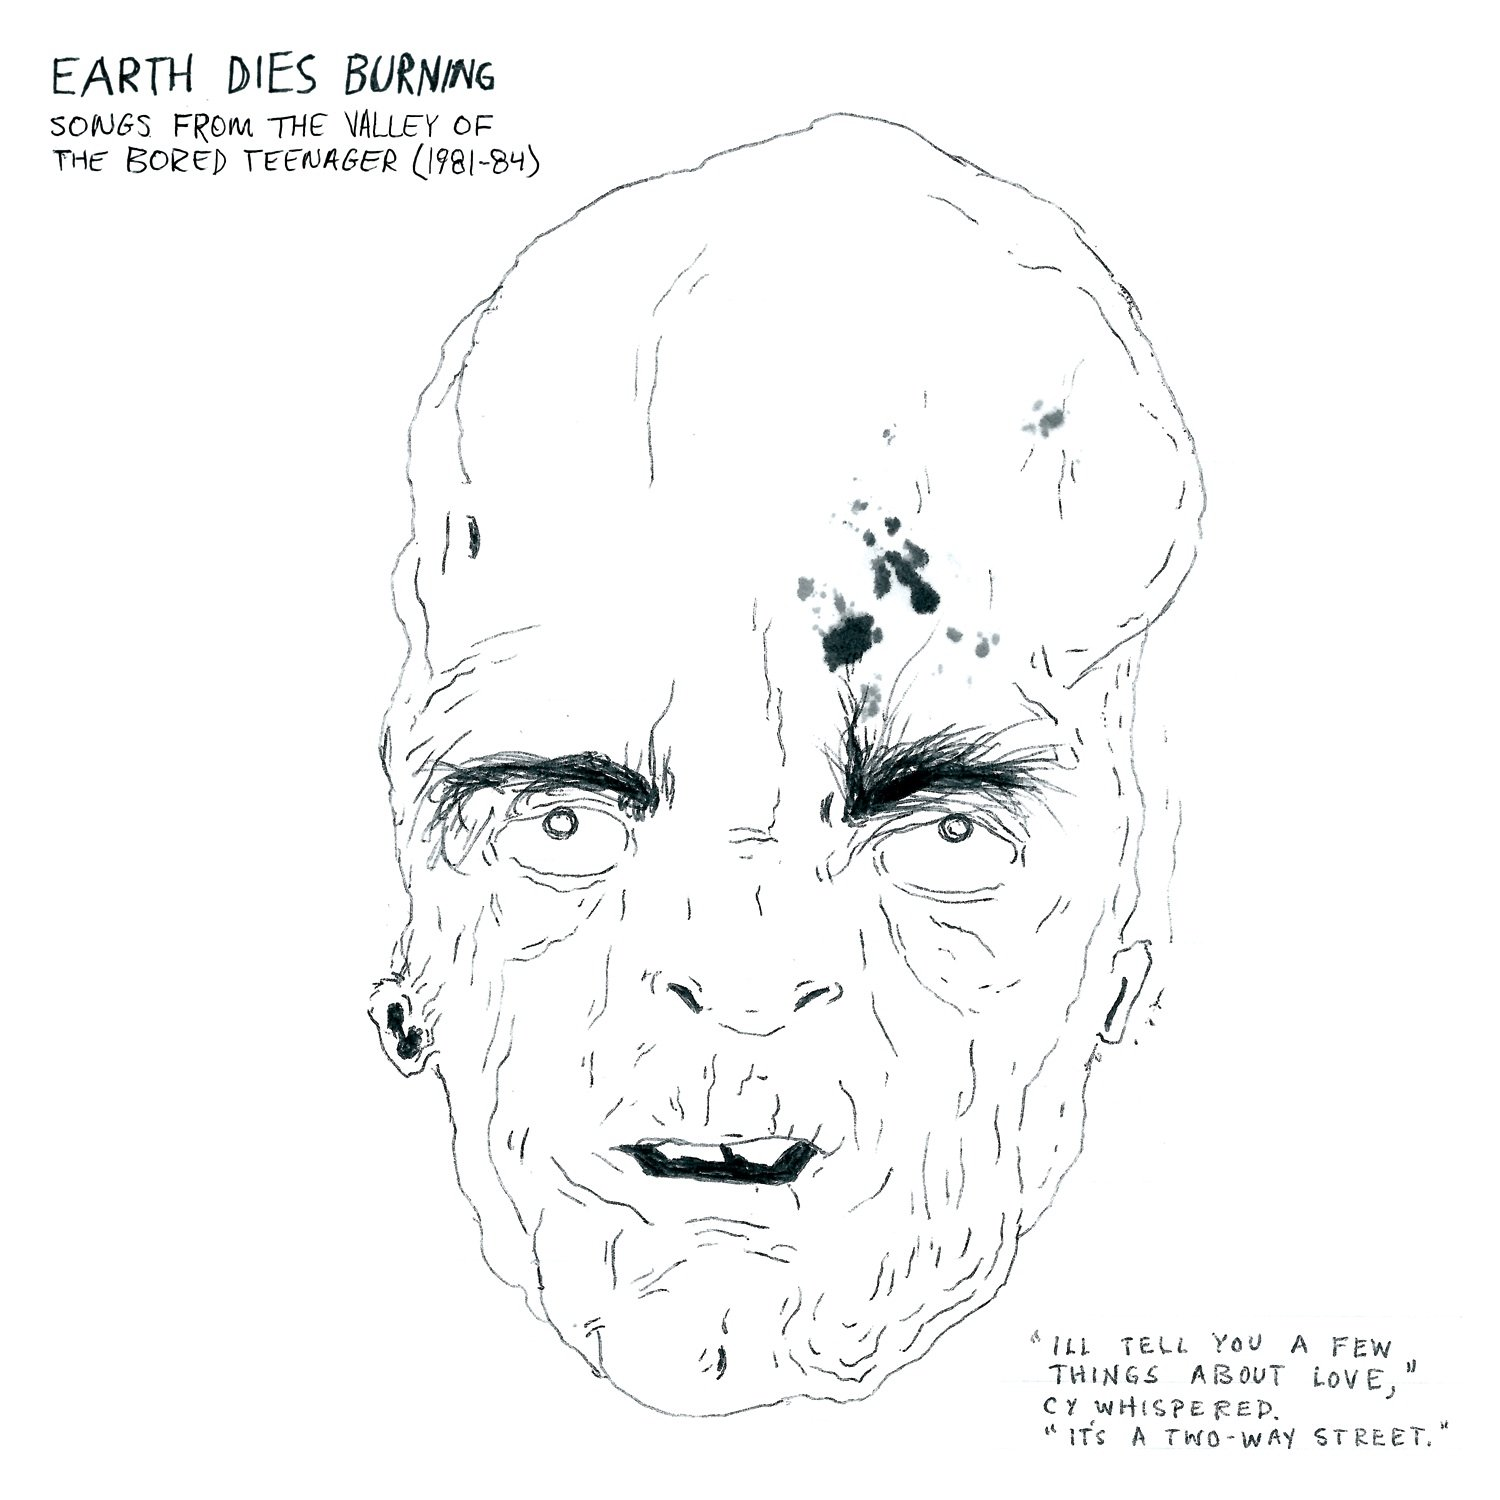 EARTH DIES BURNING - SONGS FROM THE VALLEY OF BORED TEENAGER (1981-84)